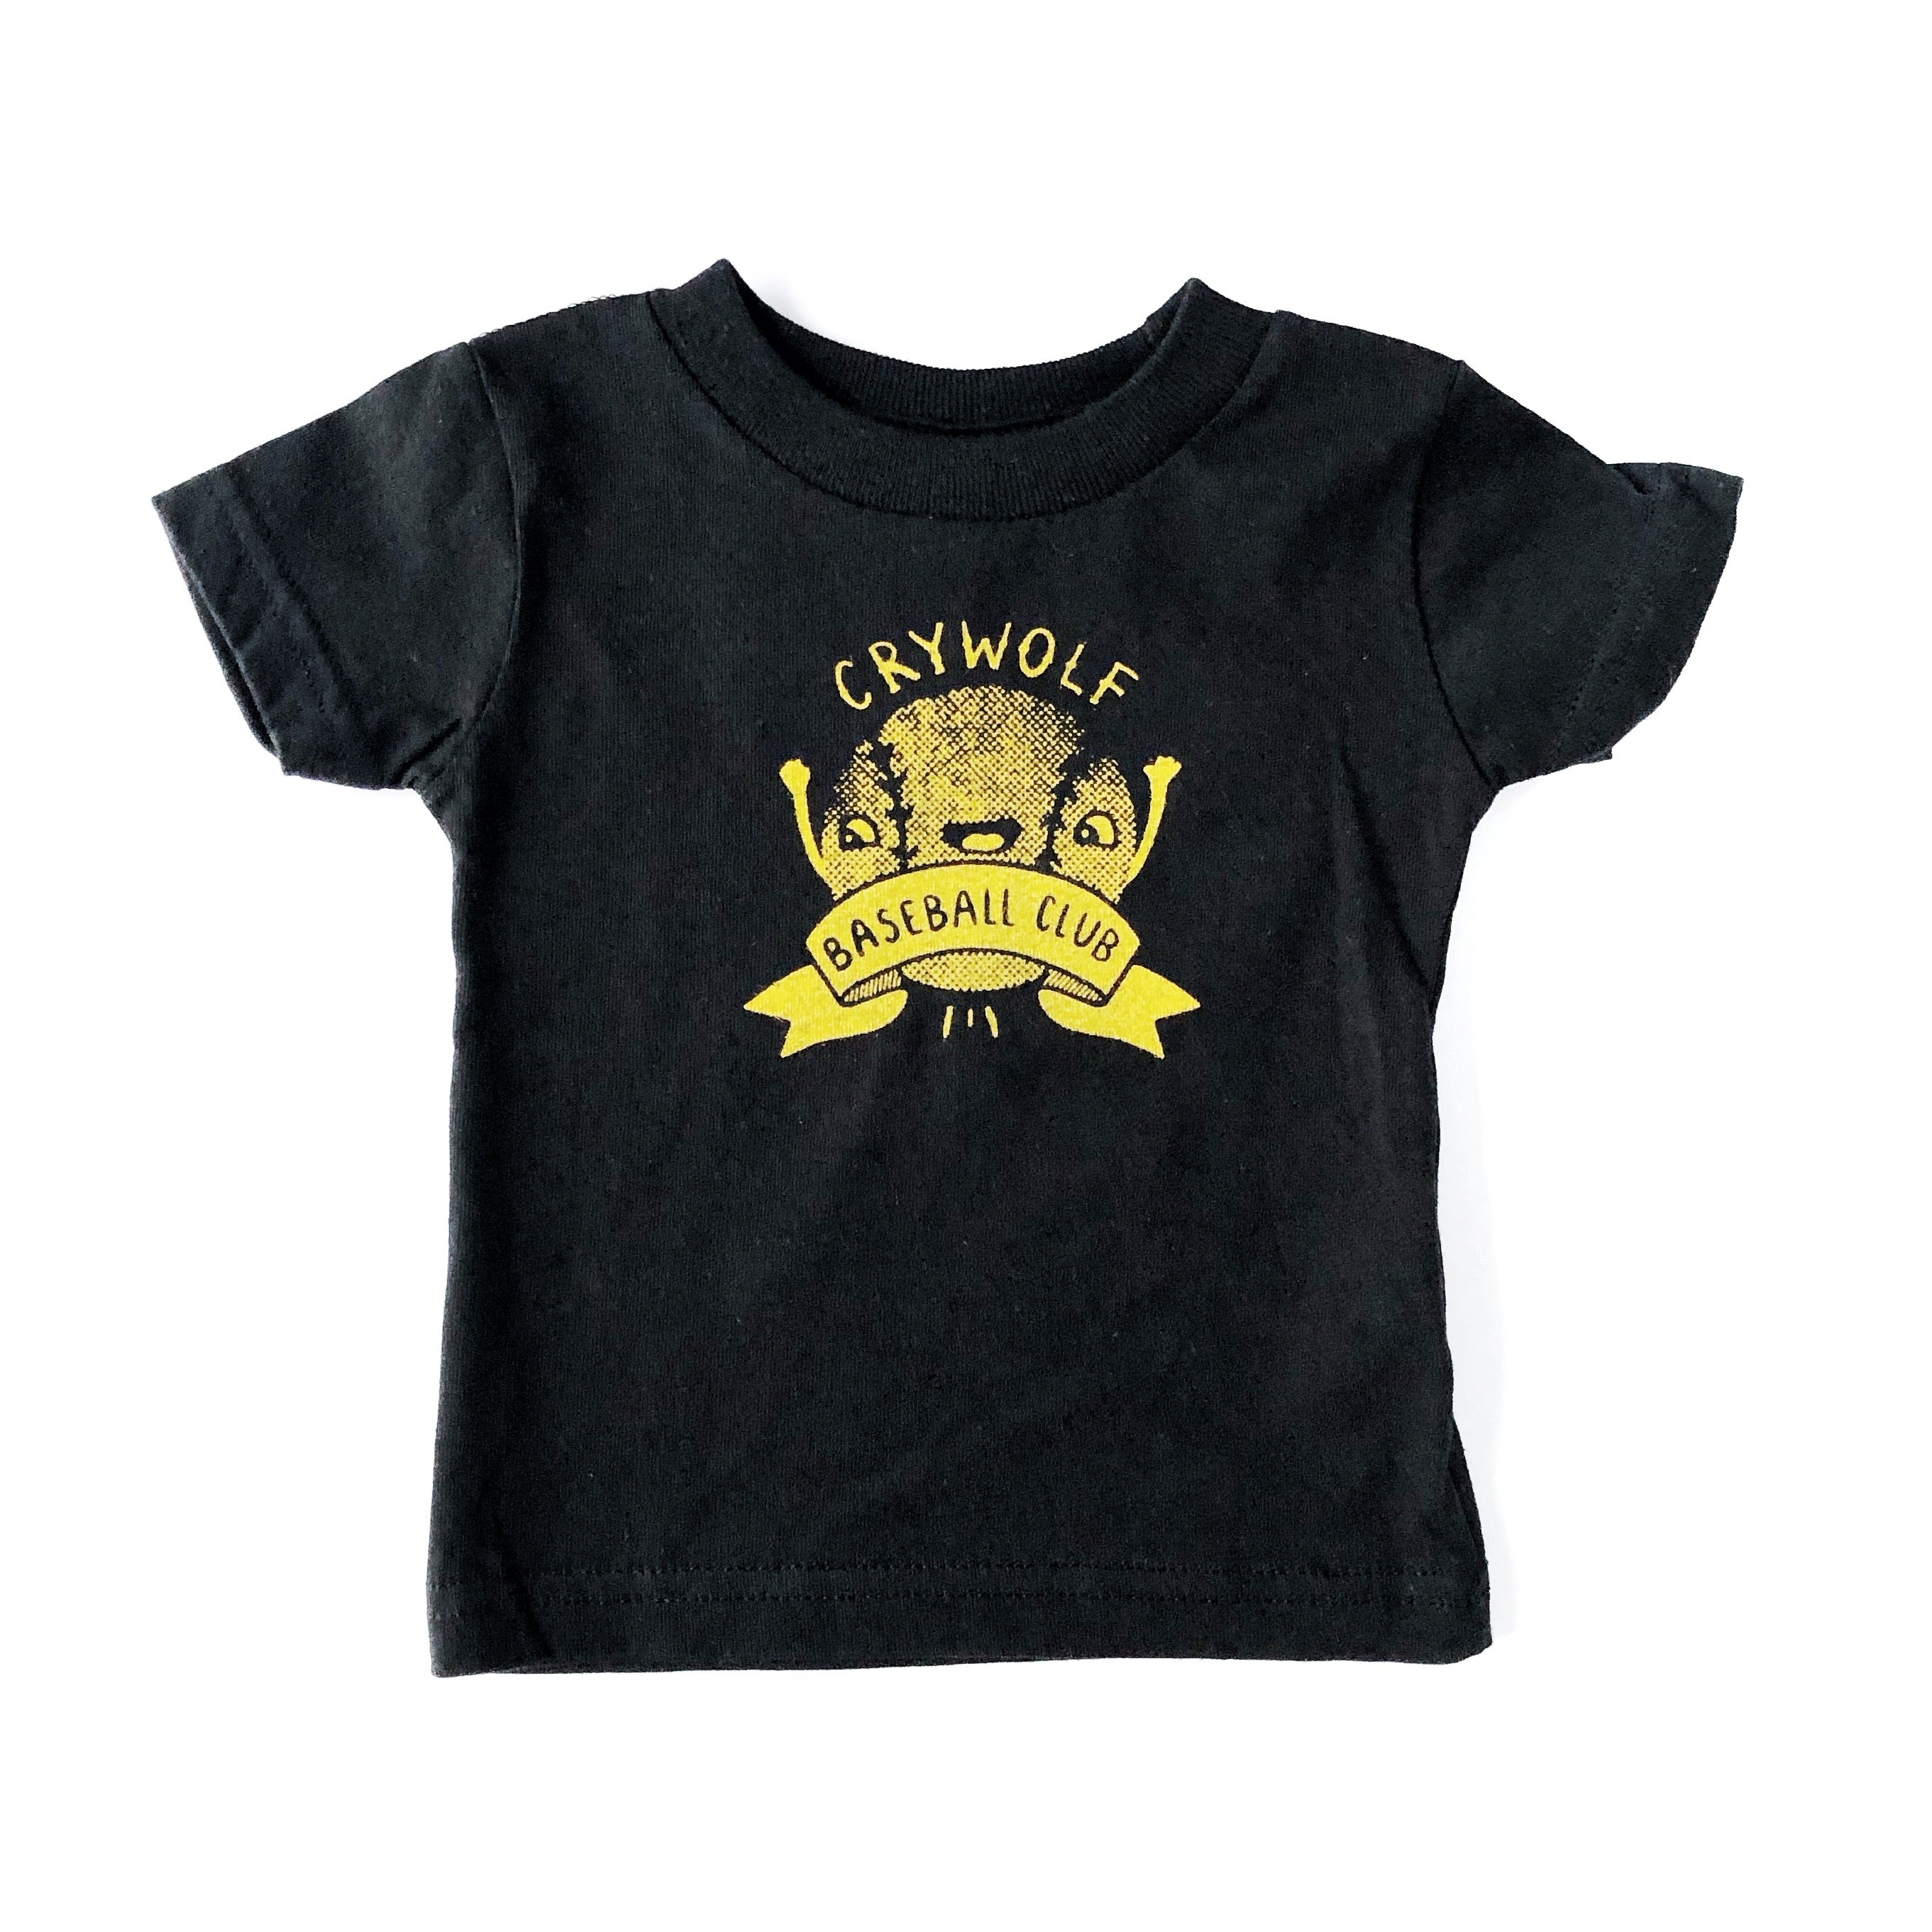 Kids Lil Slugger Baseball Club Tshirt